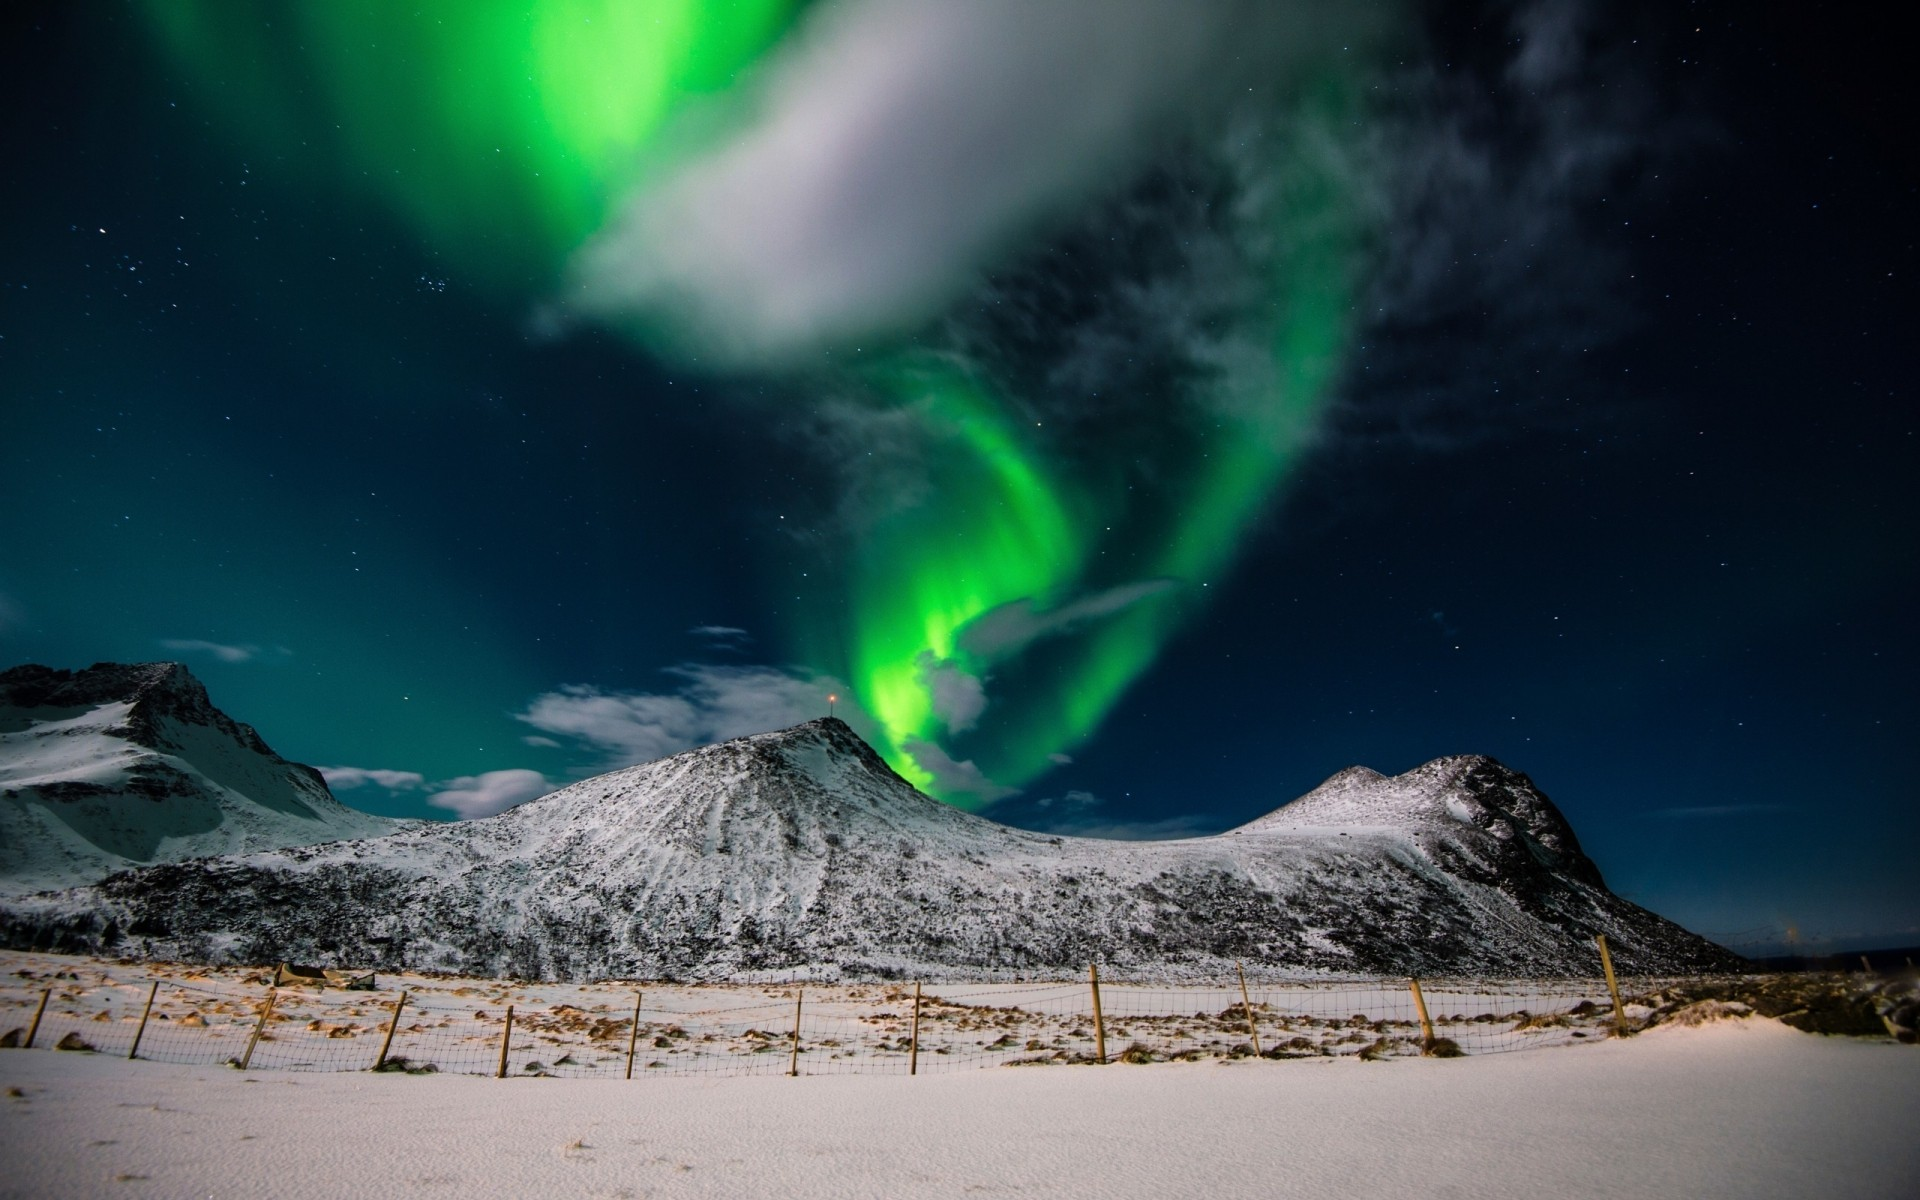 landscapes nature snow landscape outdoors moon sky astronomy travel water winter light aurora borealis northern lights